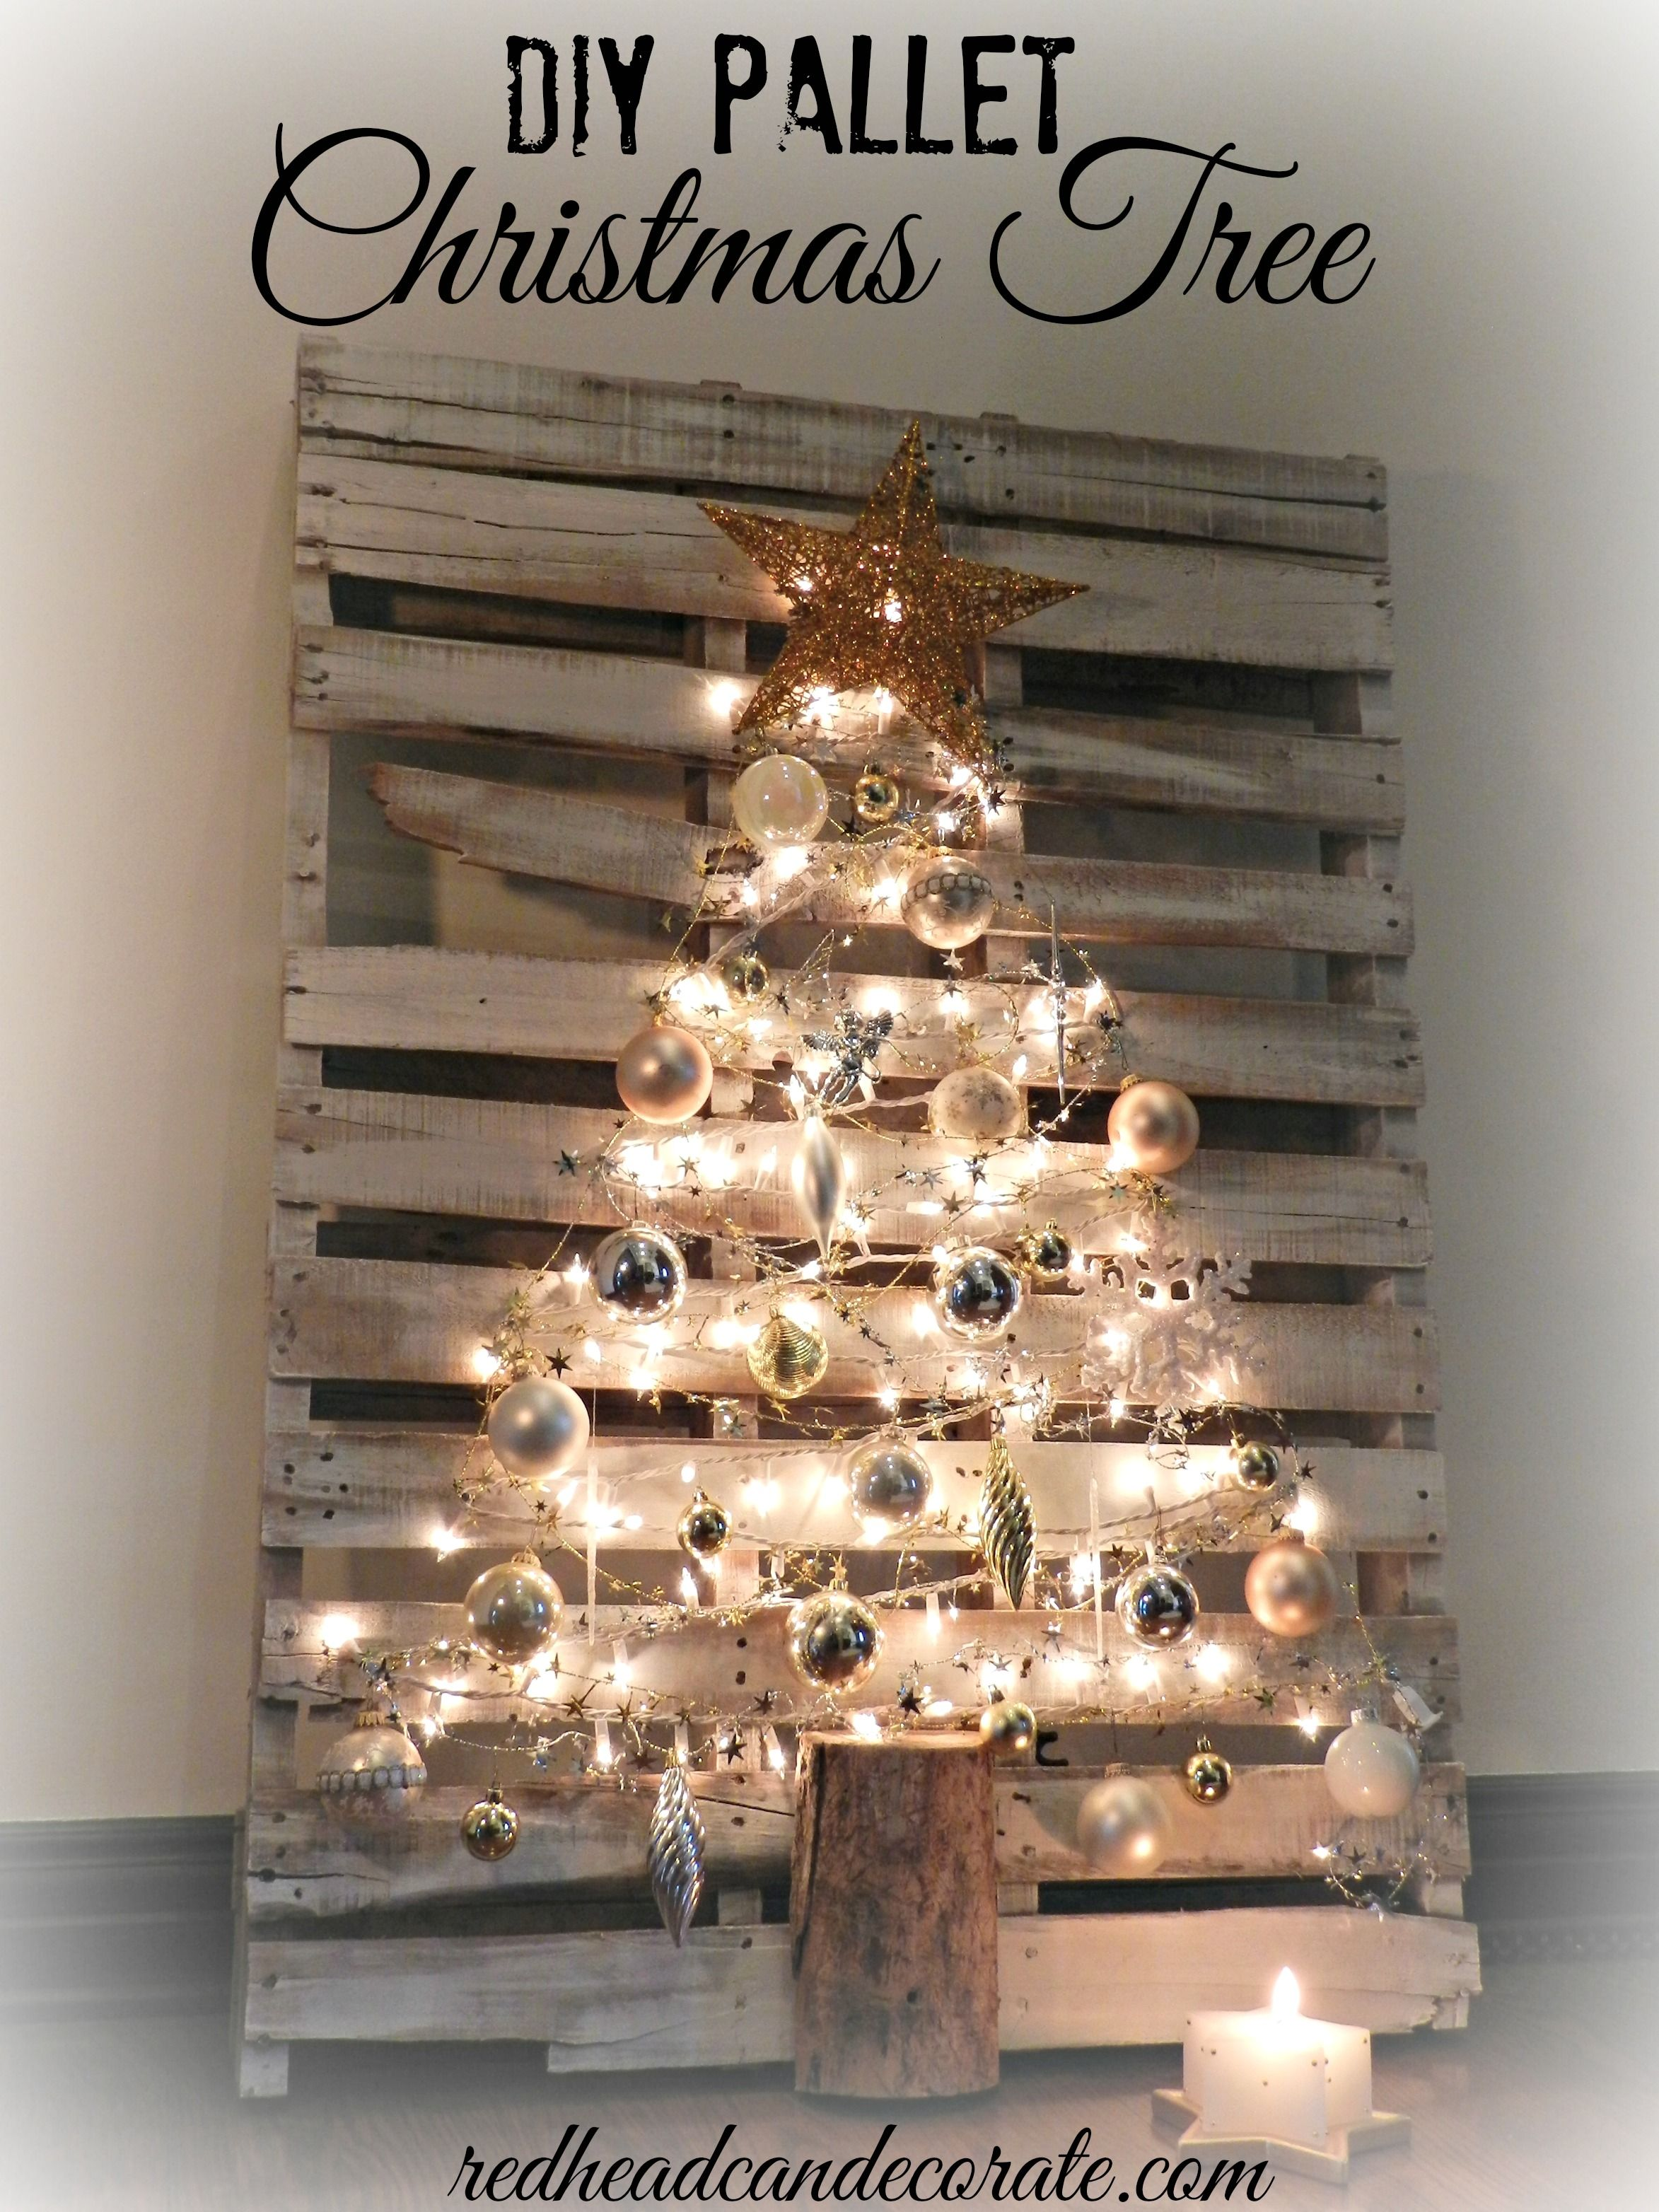 pallet christmas tree redhead can decorateredhead can decorate palette christmas tree pallet ideas for - Pallet Christmas Decoration Ideas